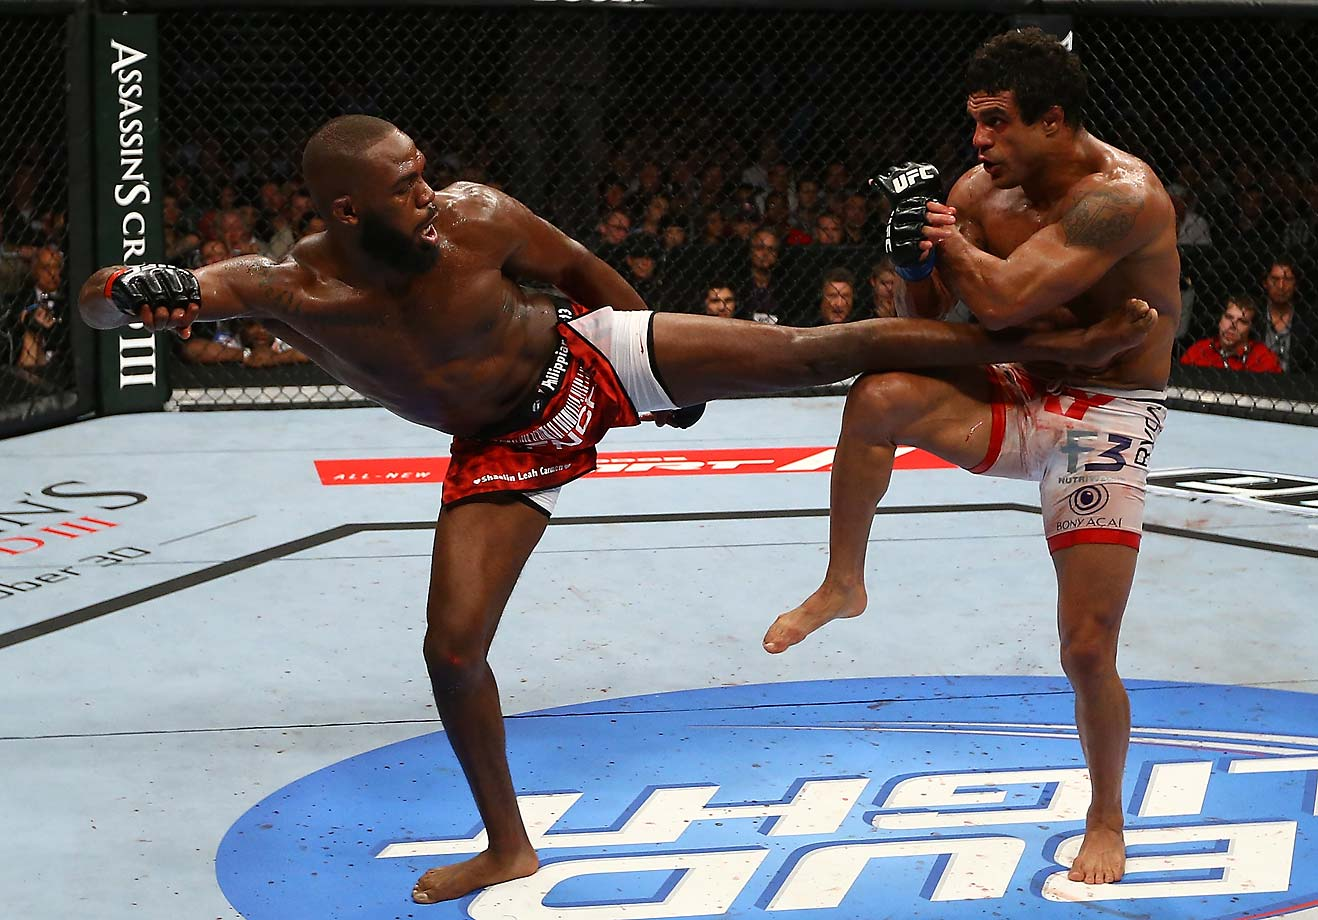 Jones lands a forceful kick to the body during the main event of UFC 152 against Vitor Belfort.